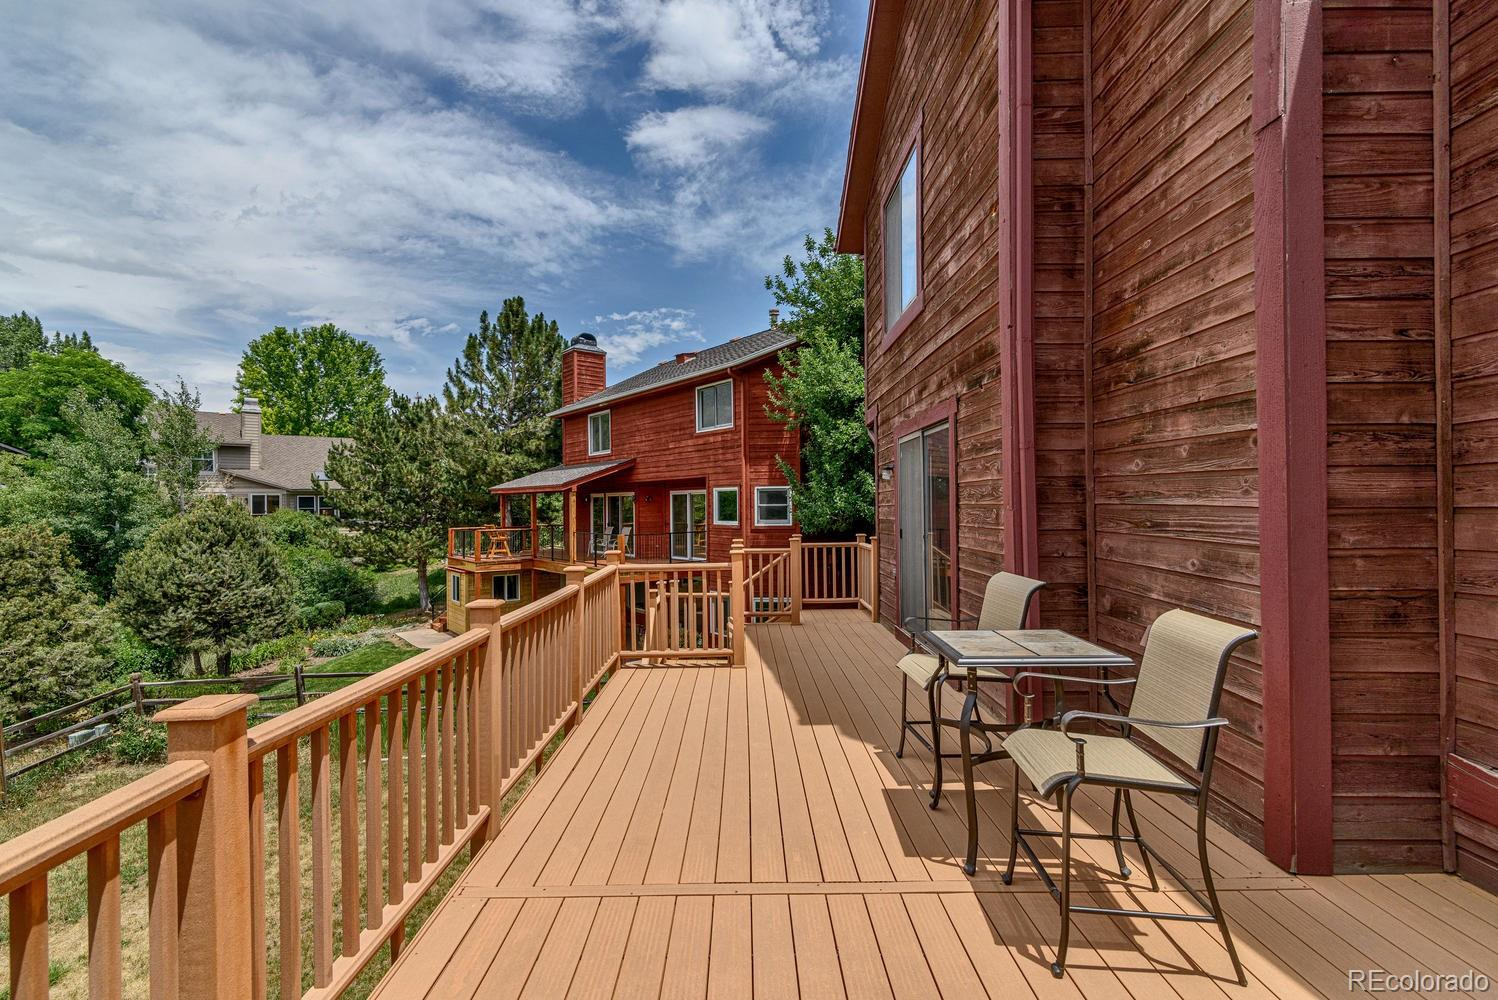 MLS# 5287137 - 9 - 1354 W Briarwood Avenue, Littleton, CO 80120